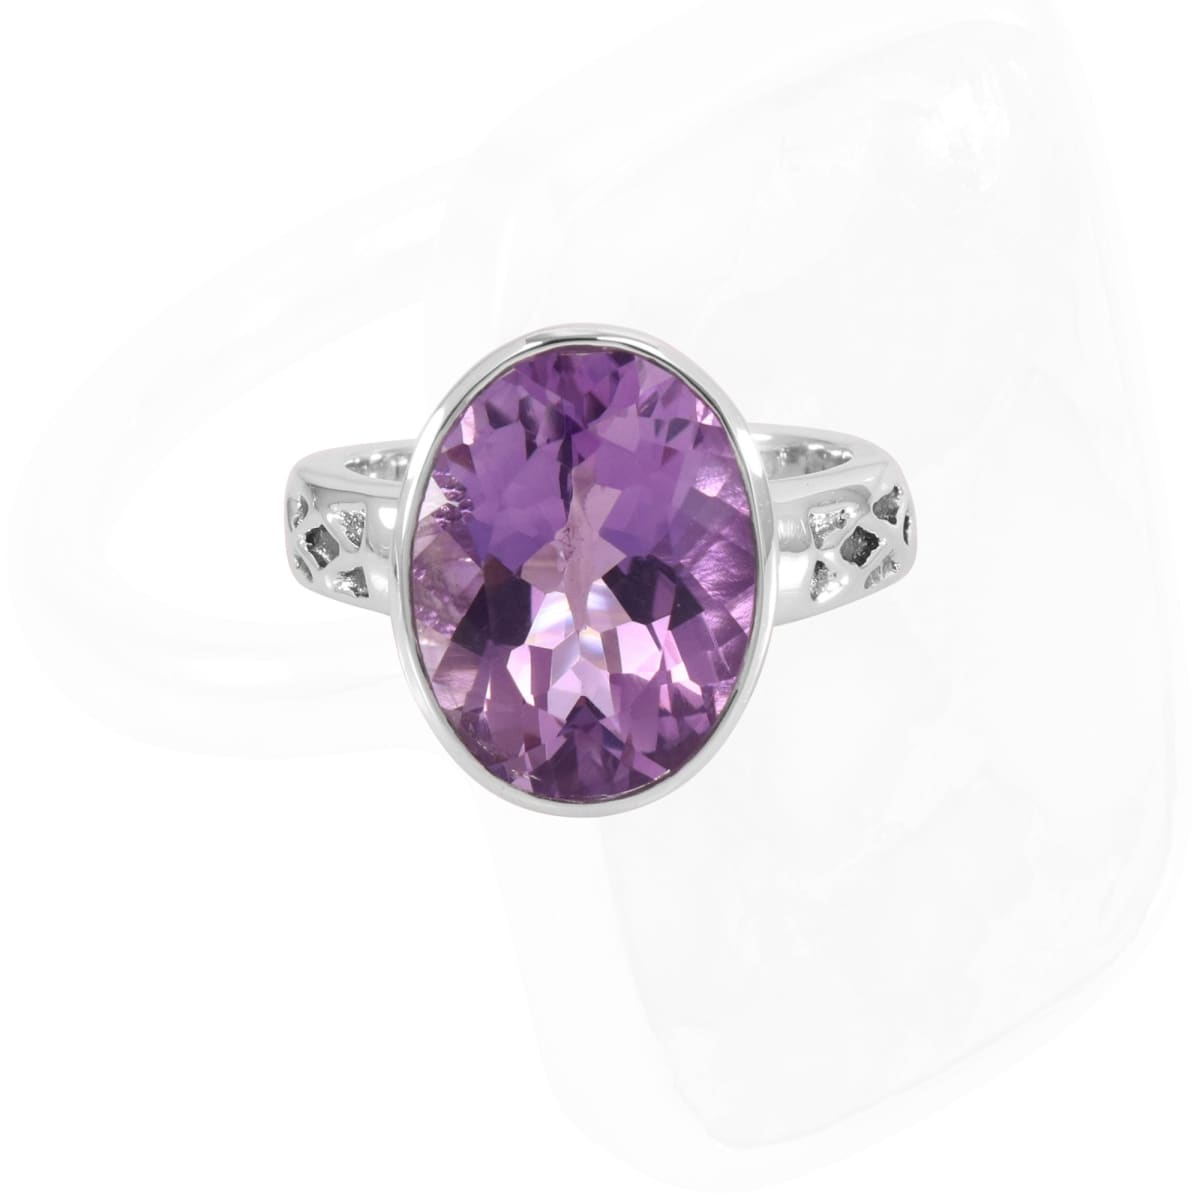 Ring Amethyst Silver Handmade 925 Sterling Gemstone 12X16mm For Women's - by Rajtarang